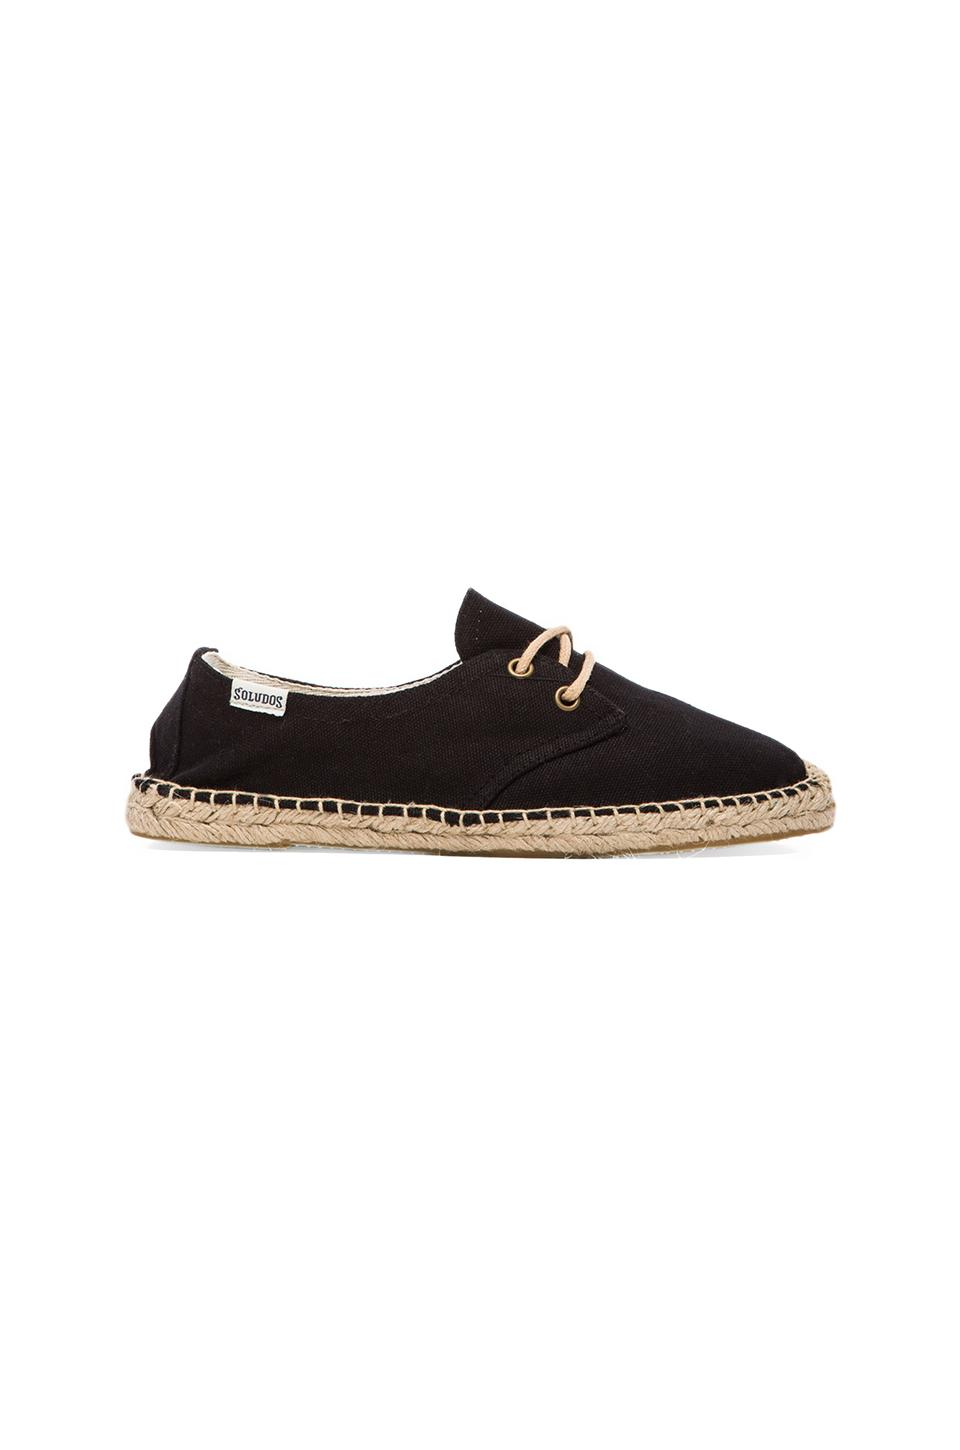 Soludos Canvas Derby Lace Up in Black from REVOLVEclothing.com